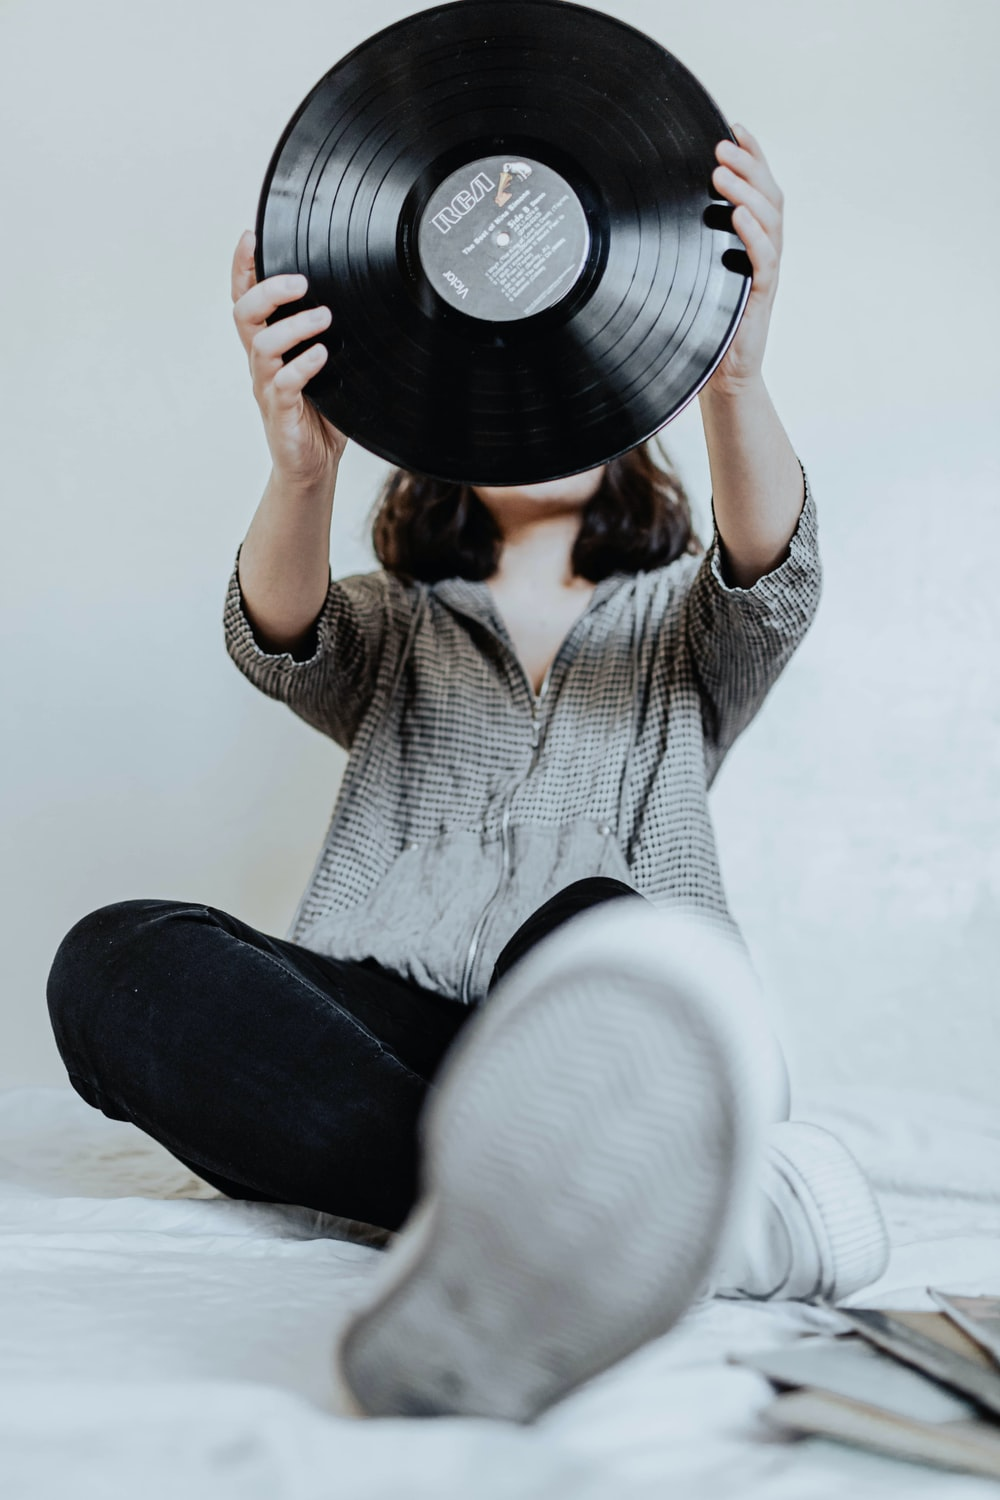 woman in white knit sweater and black pants holding black vinyl record